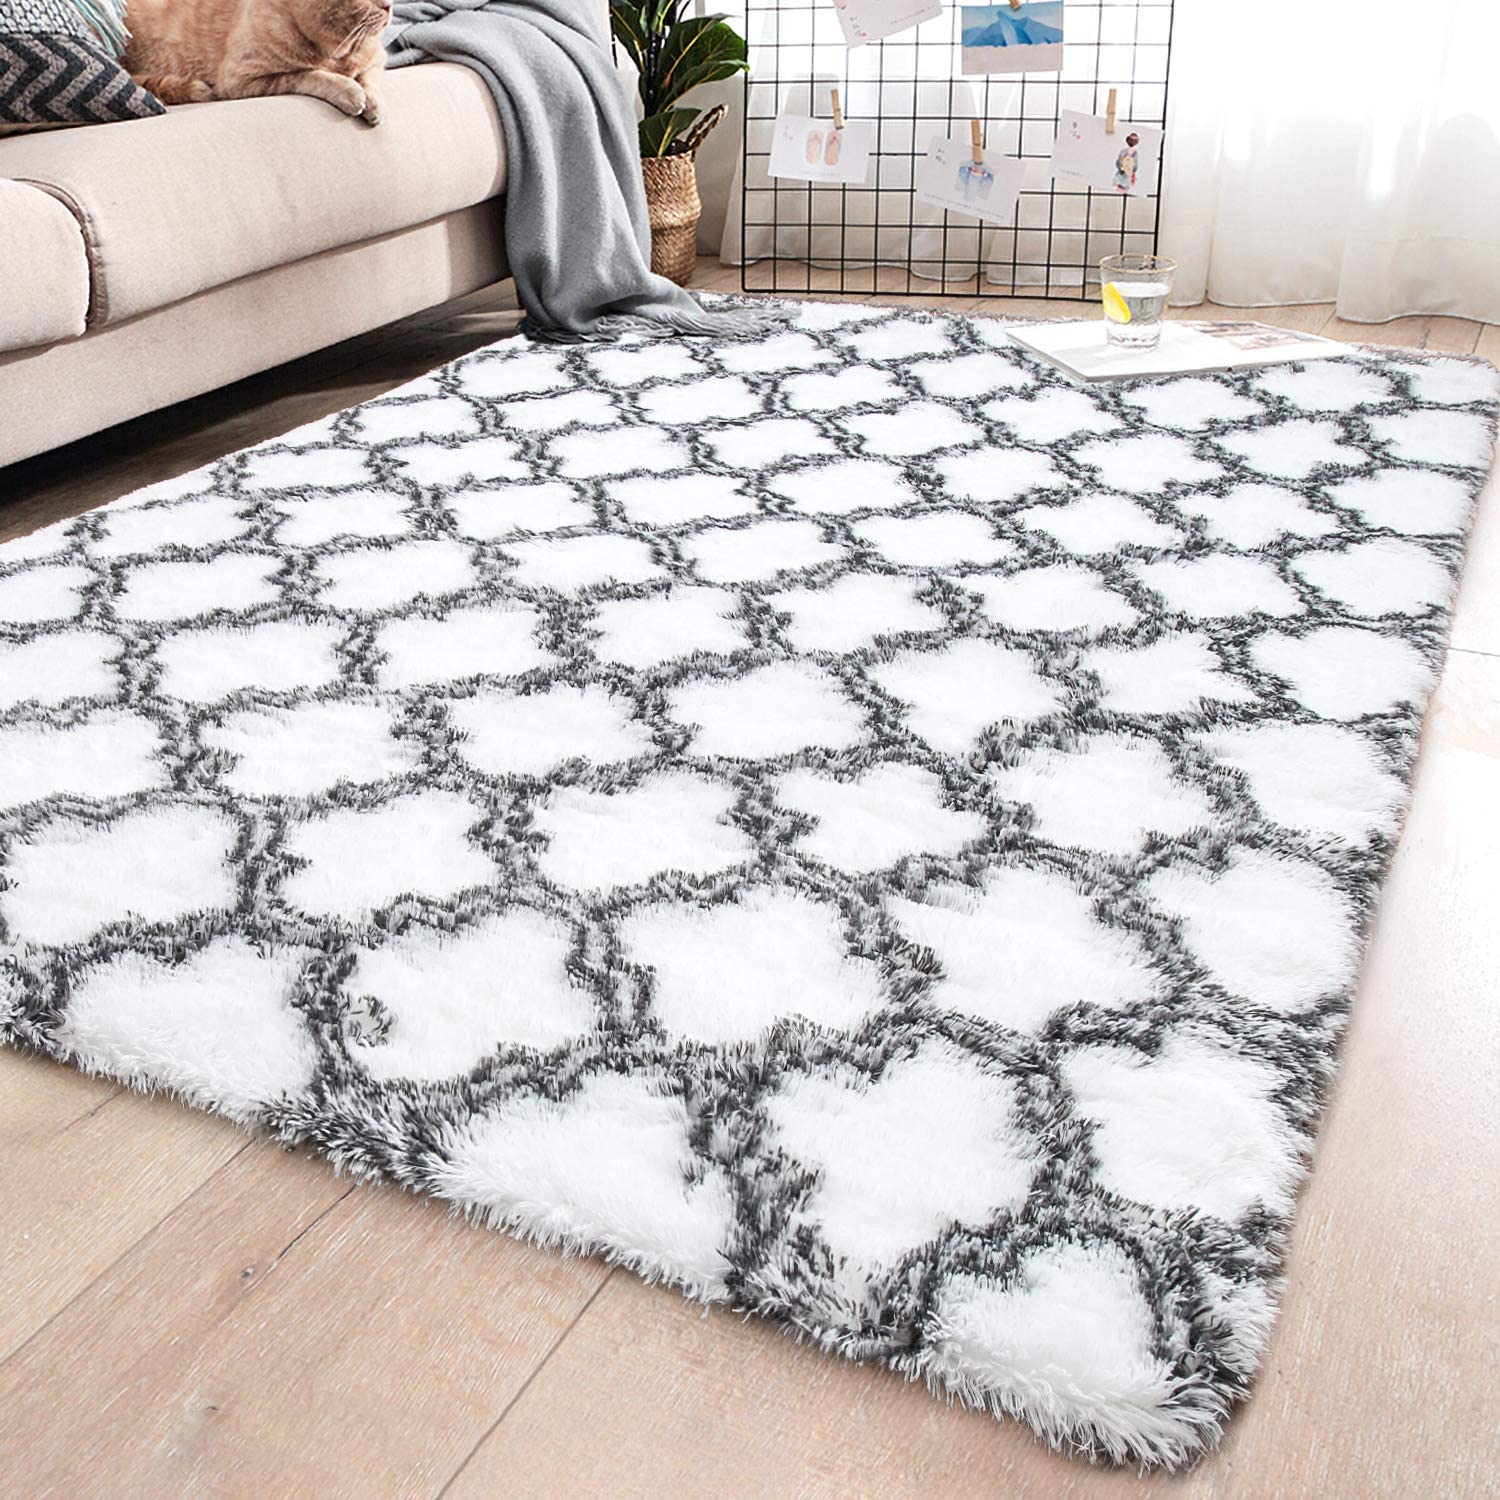 YJ.GWL Soft Indoor Large Modern Area Rugs Shaggy Patterned Fluffy Carpets Suitable for Living Room and Bedroom Nursery Rugs Home Decor Rugs for Christmas and Thanksgiving 5'x8' White Trellis